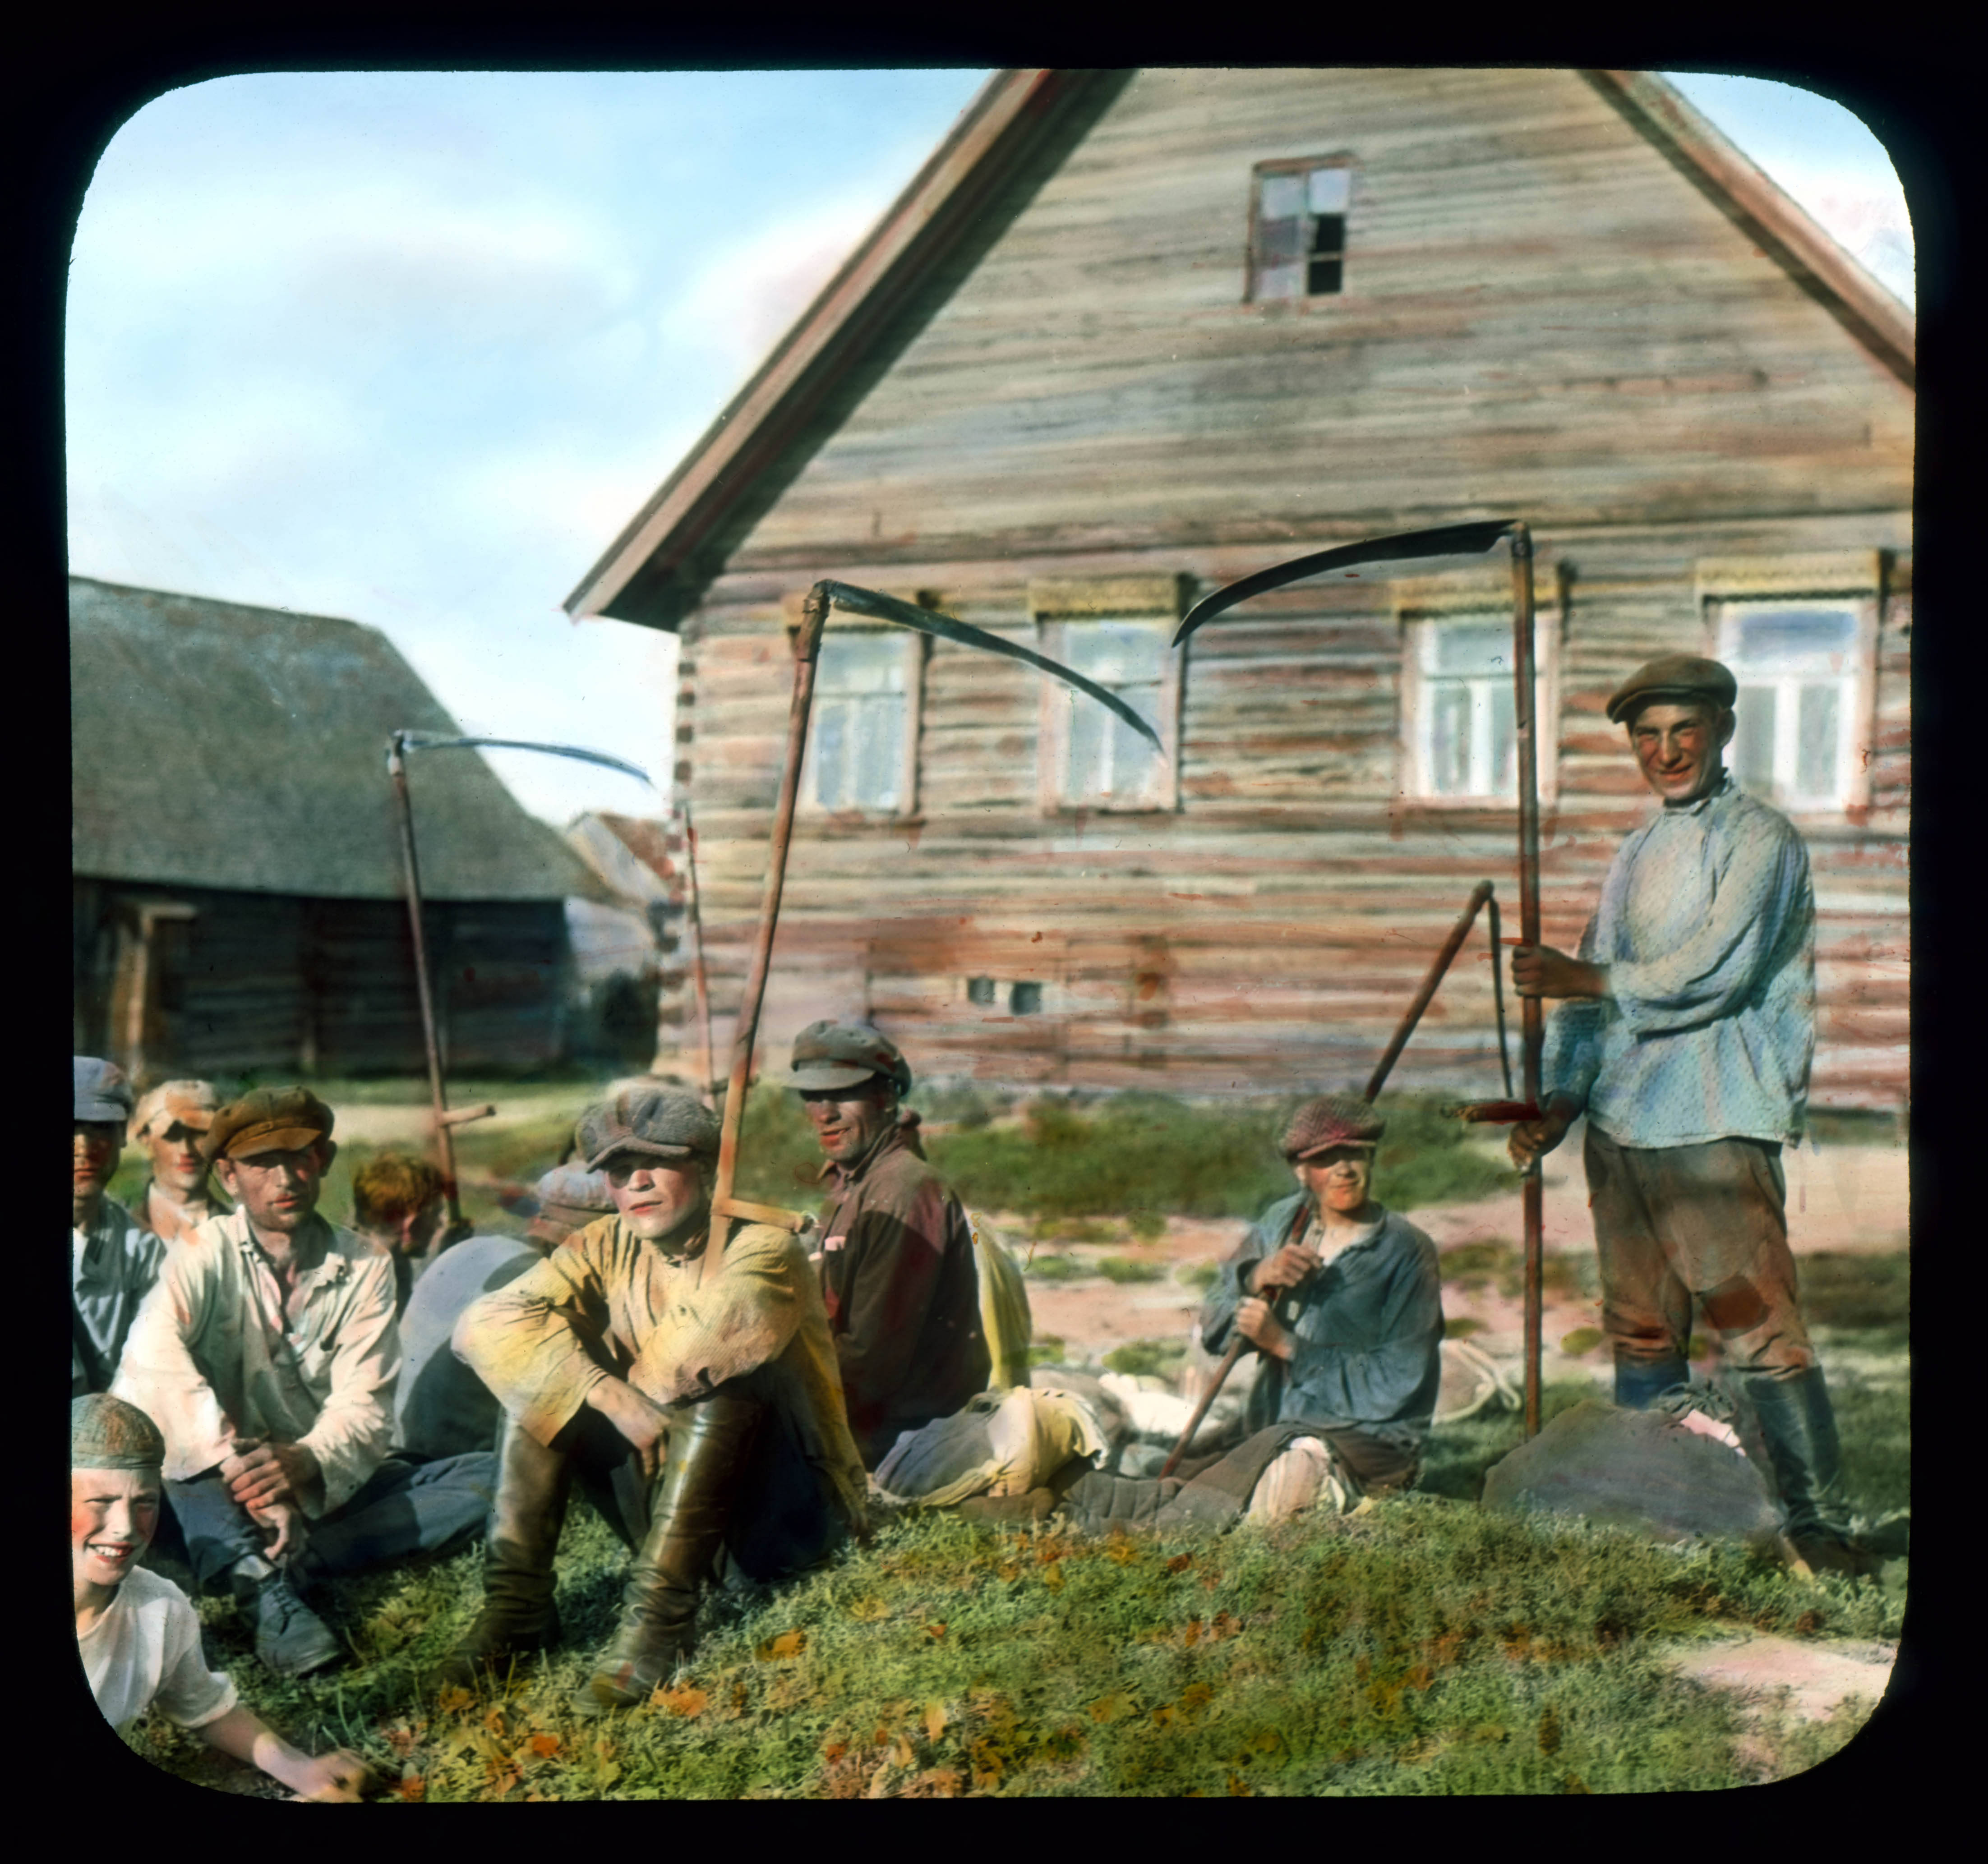 Saint Petersburg farmers in front of a house, near Leningrad